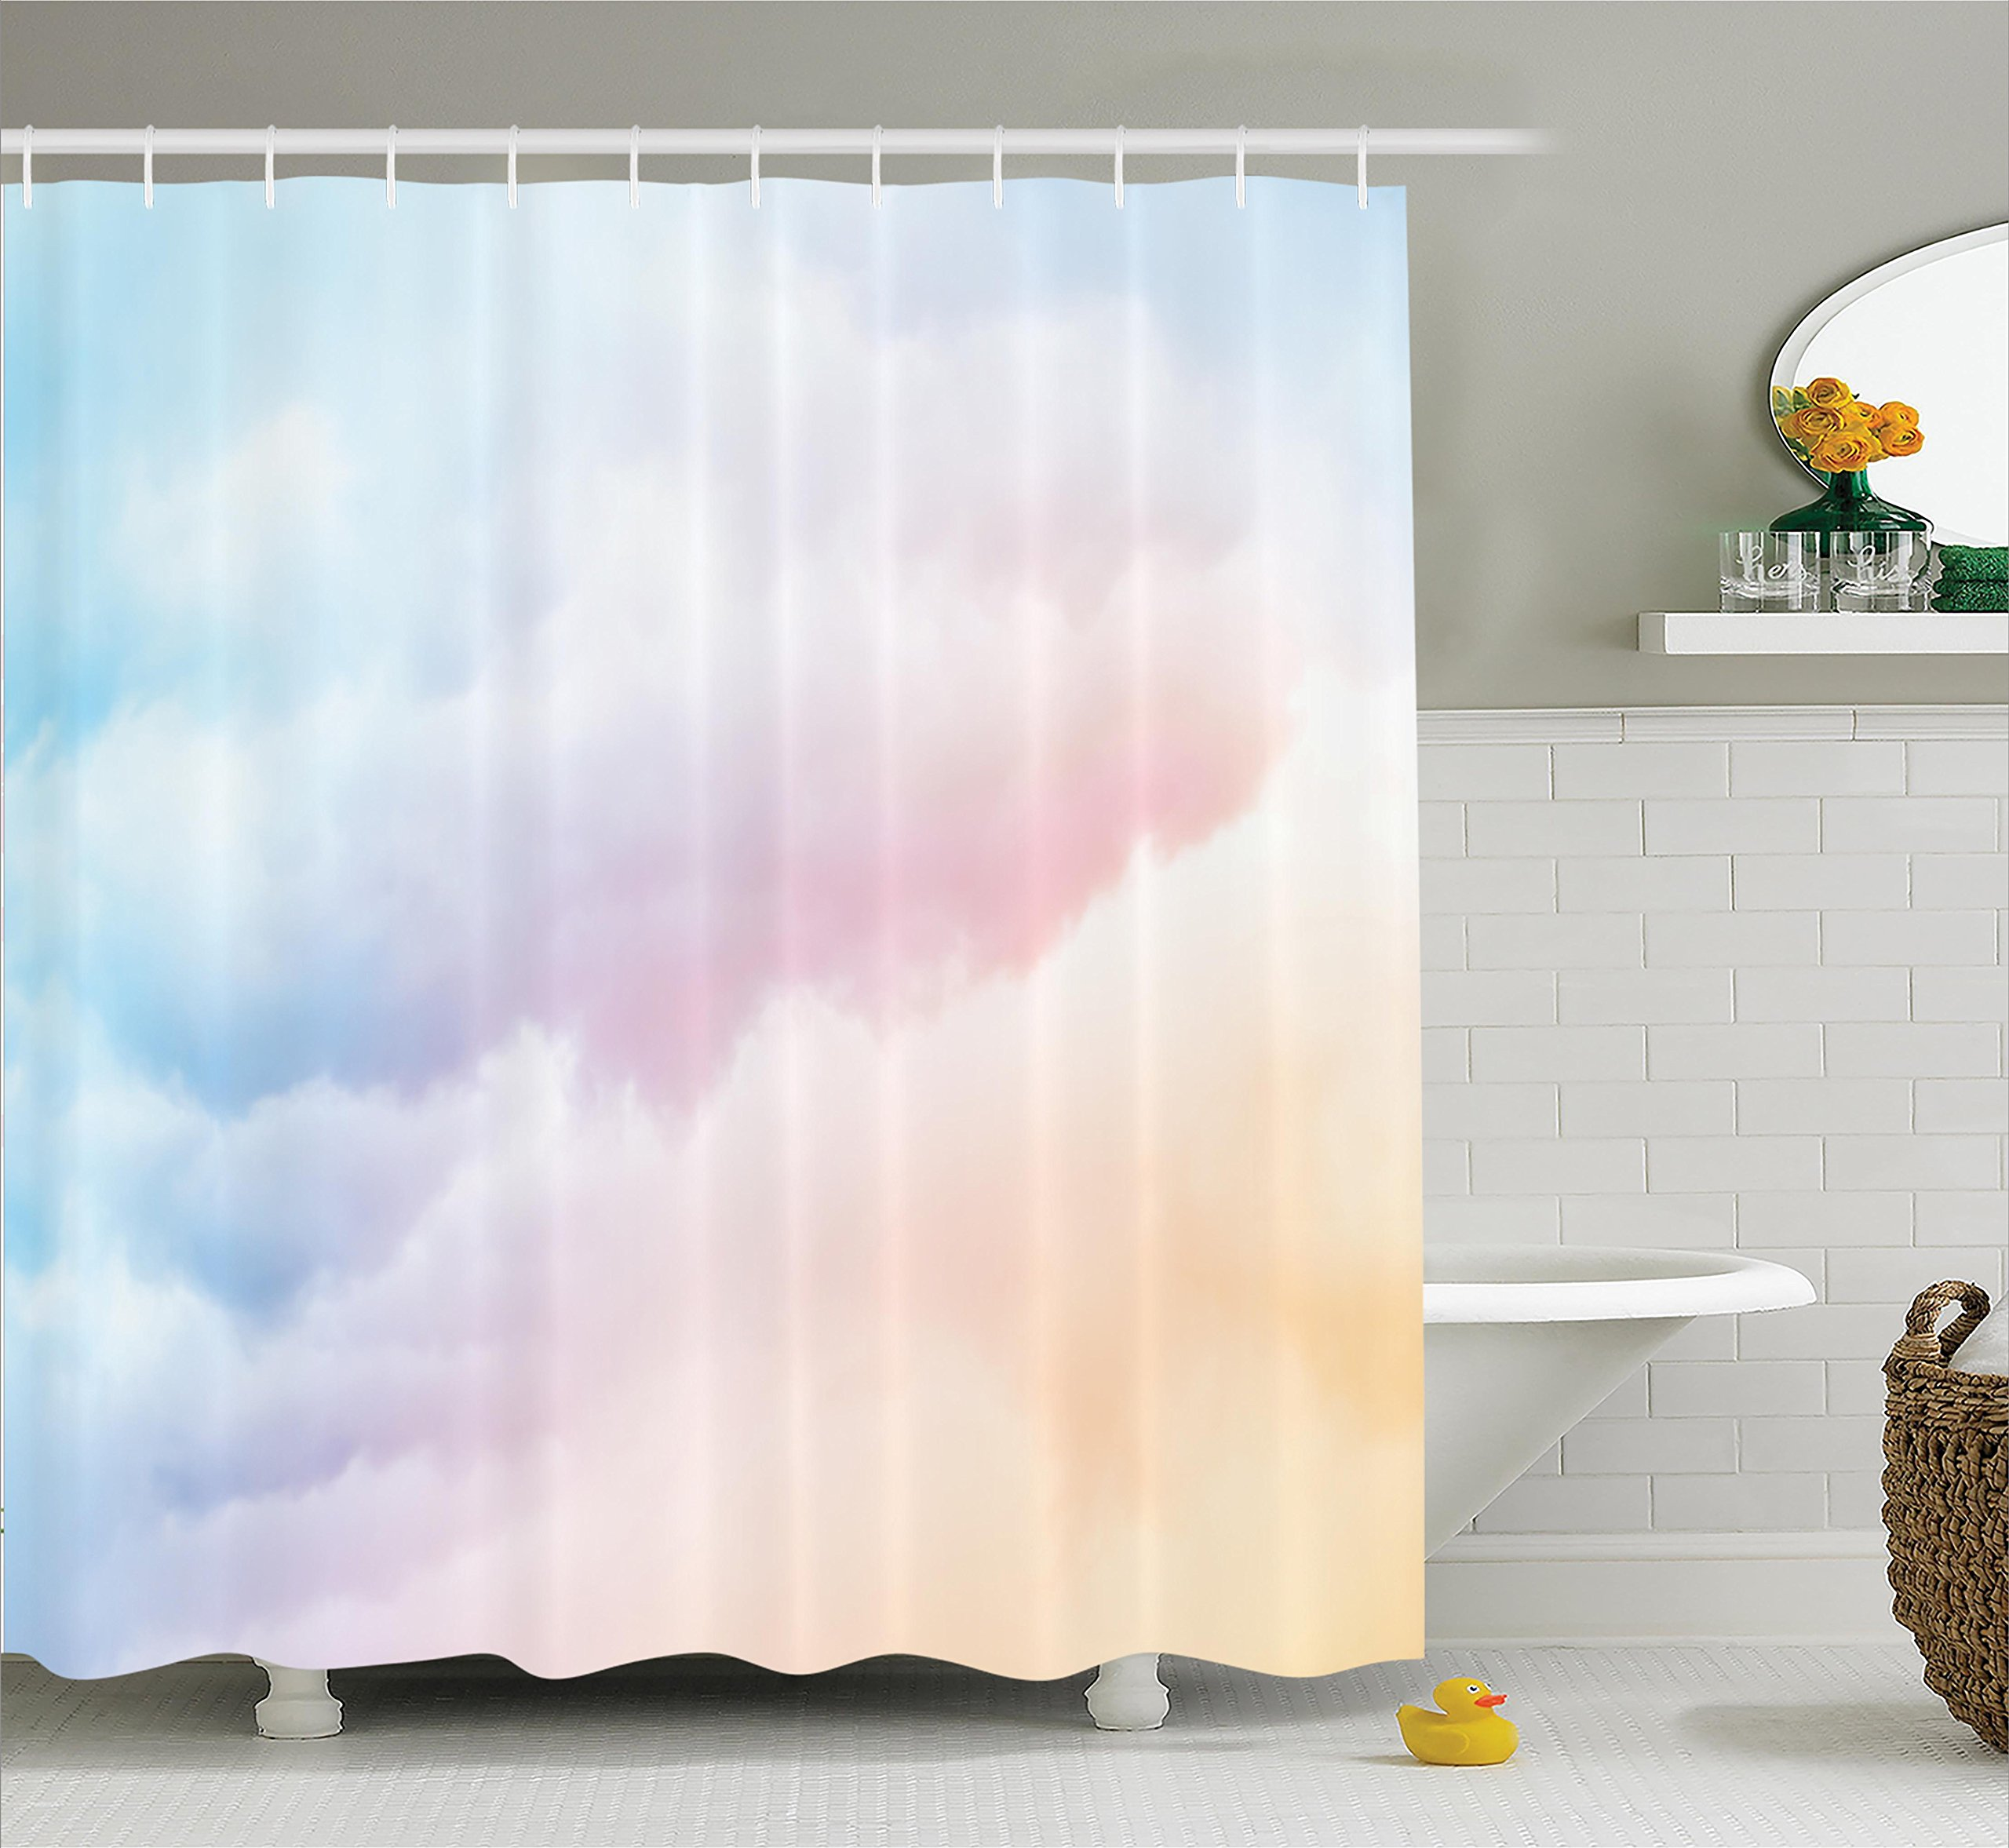 Ambesonne Apartment Decor Collection, Fluffy Dreamy Gradient Faded Pastel Cloud Ethereal Fog Sublime Rainbow Featured Decor, Polyester Fabric Bathroom Shower Curtain, 75 Inches Long, Blue Pink